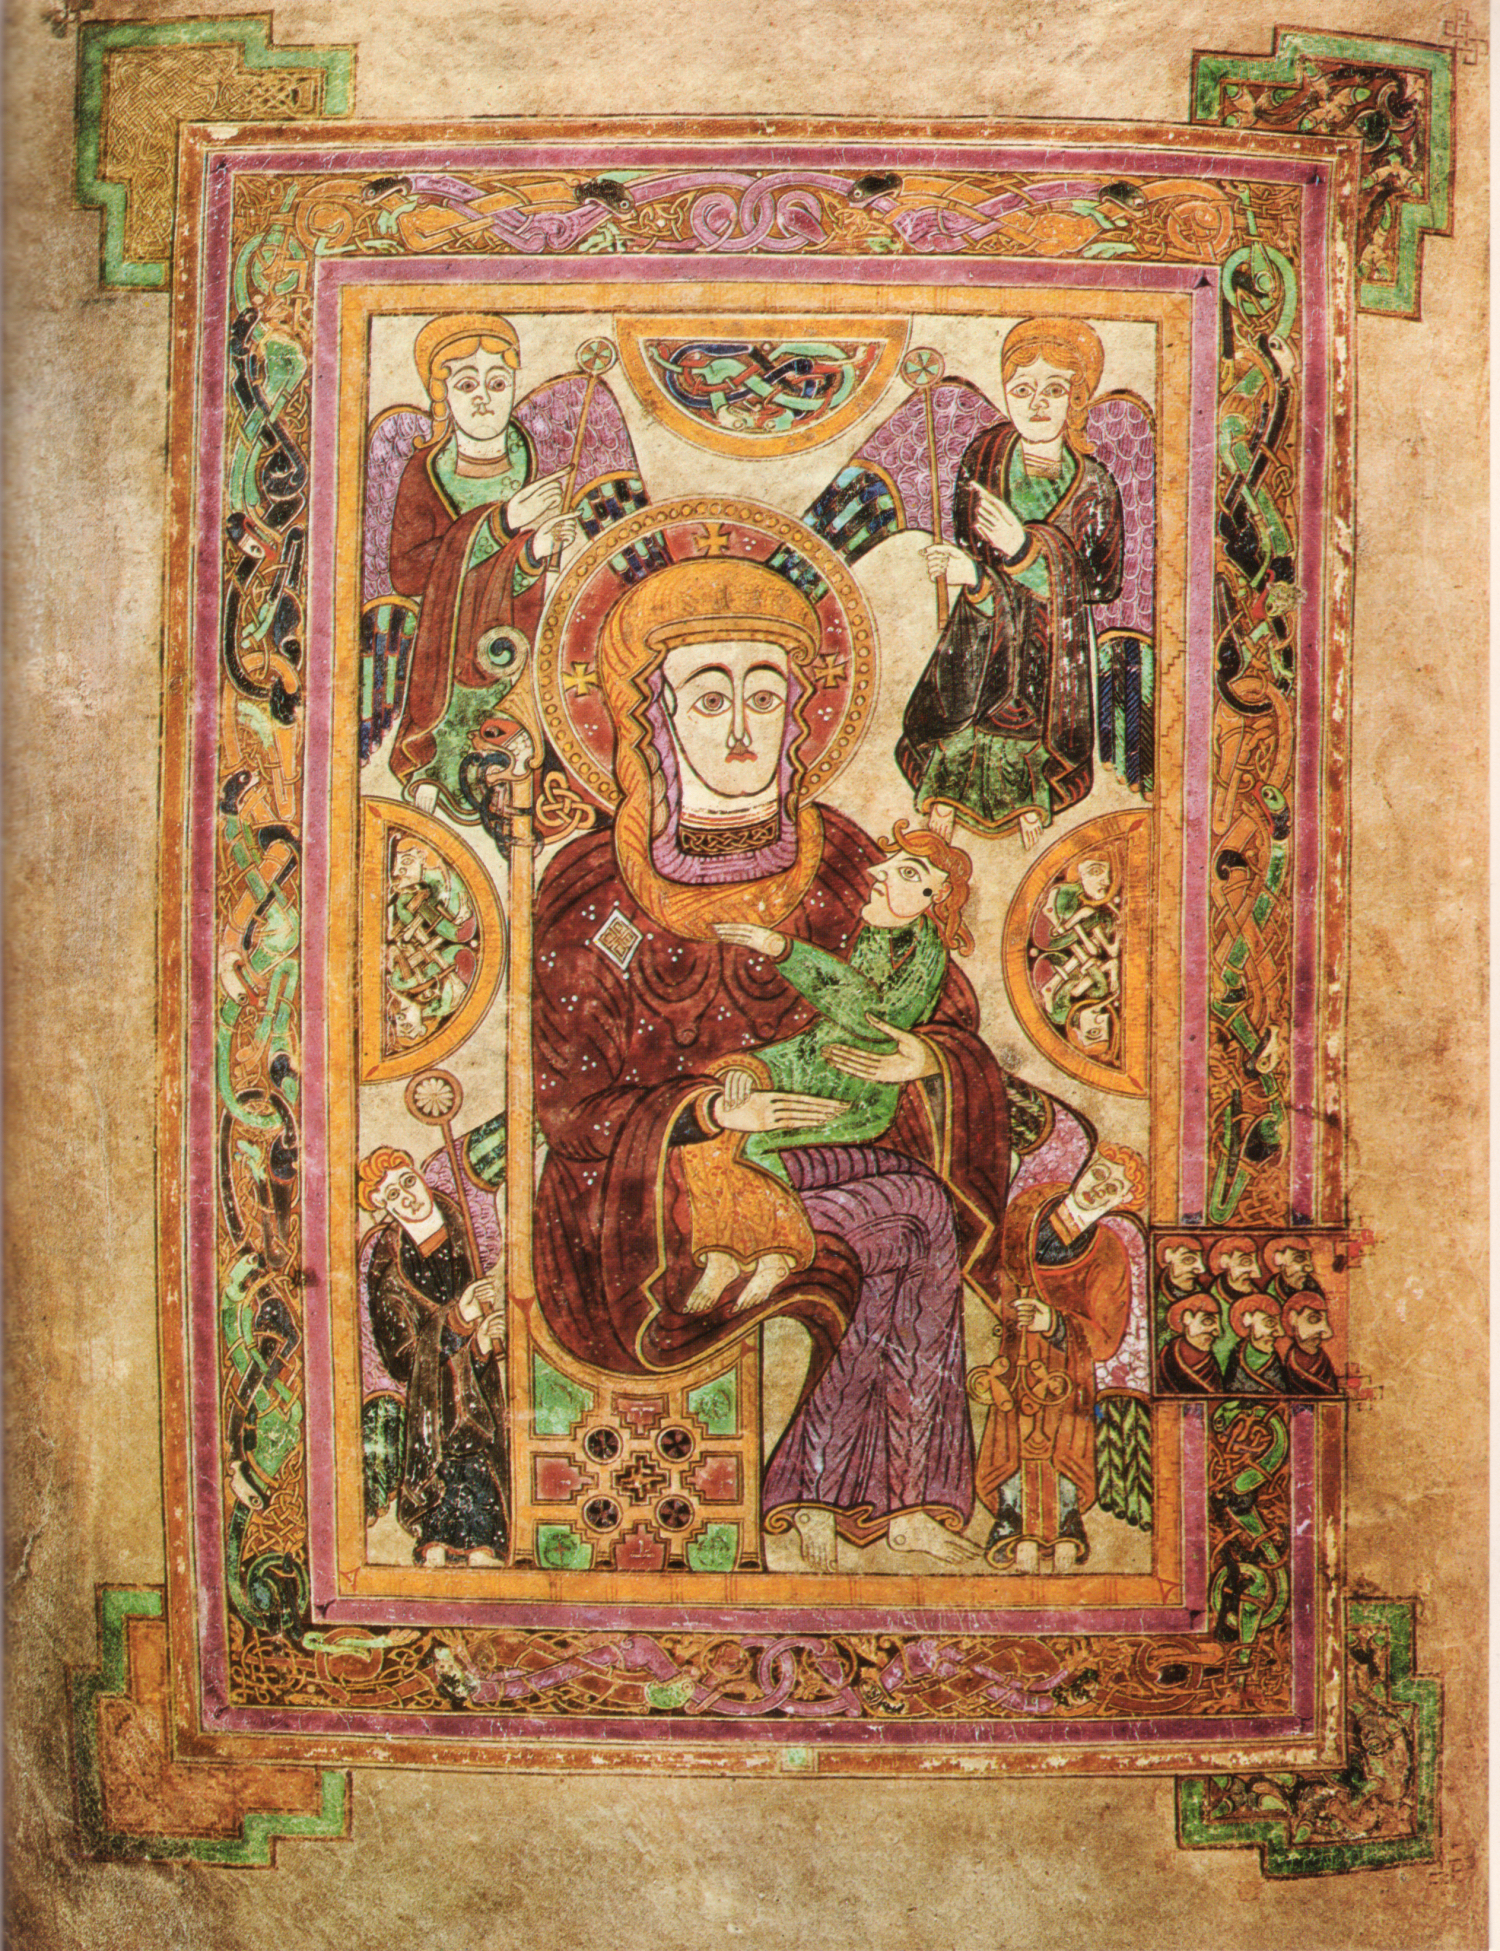 Madonna & Child Book of Kells Oldest extant image of the Virgin Mary in Western manuscript.